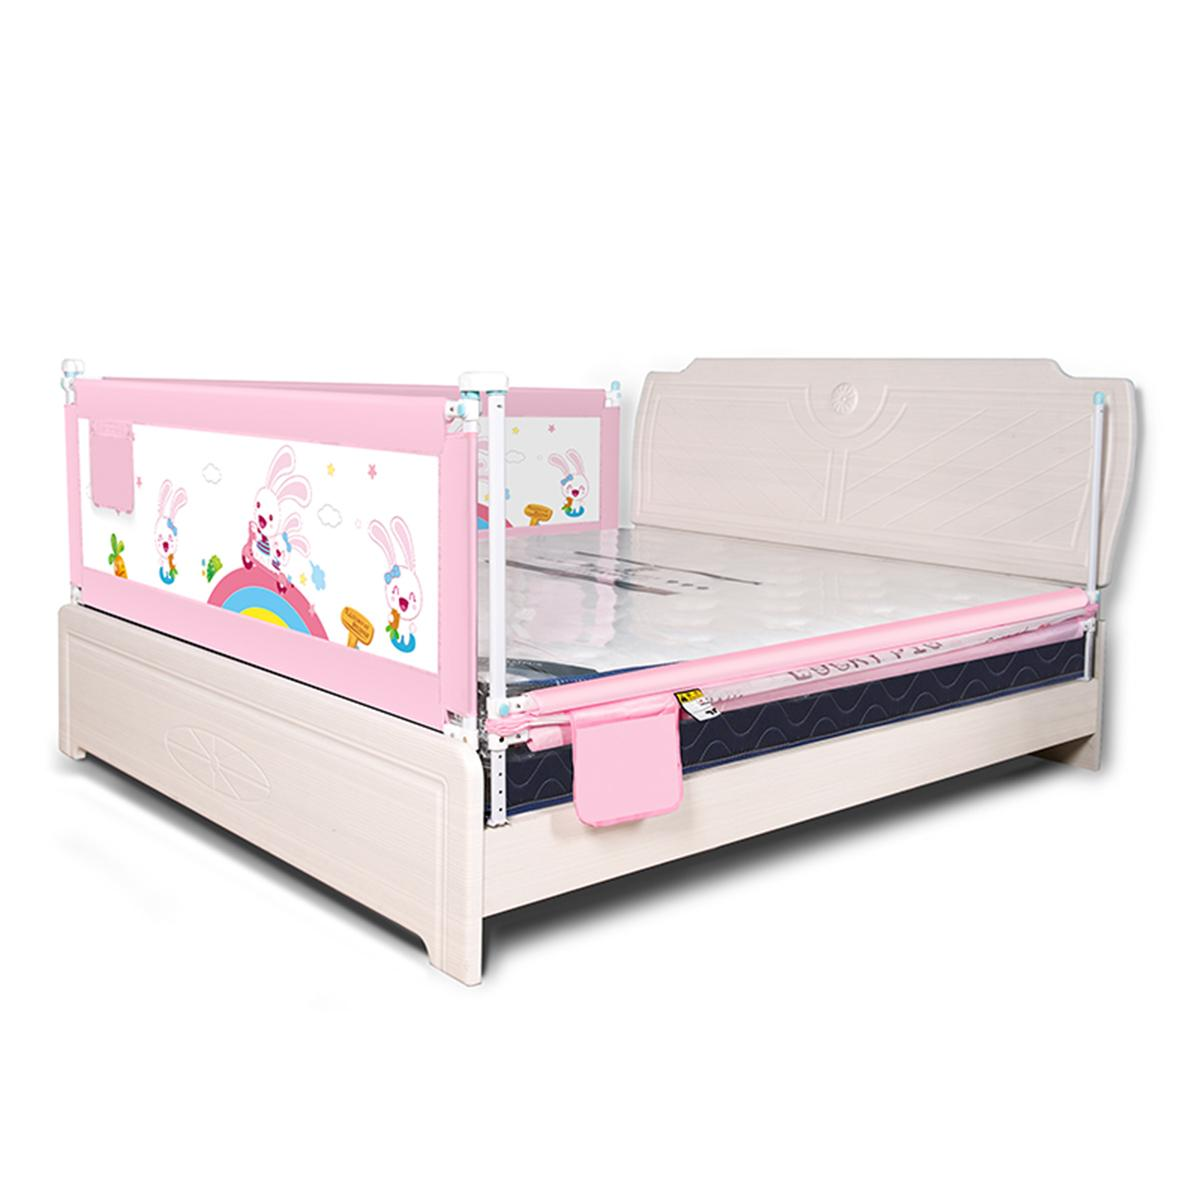 1.5m-2m Baby Bed Fence Home Kids Playpen Safety Gate Child Care Barrier For Beds Crib Rails Security Fencing Baby Safe Guard